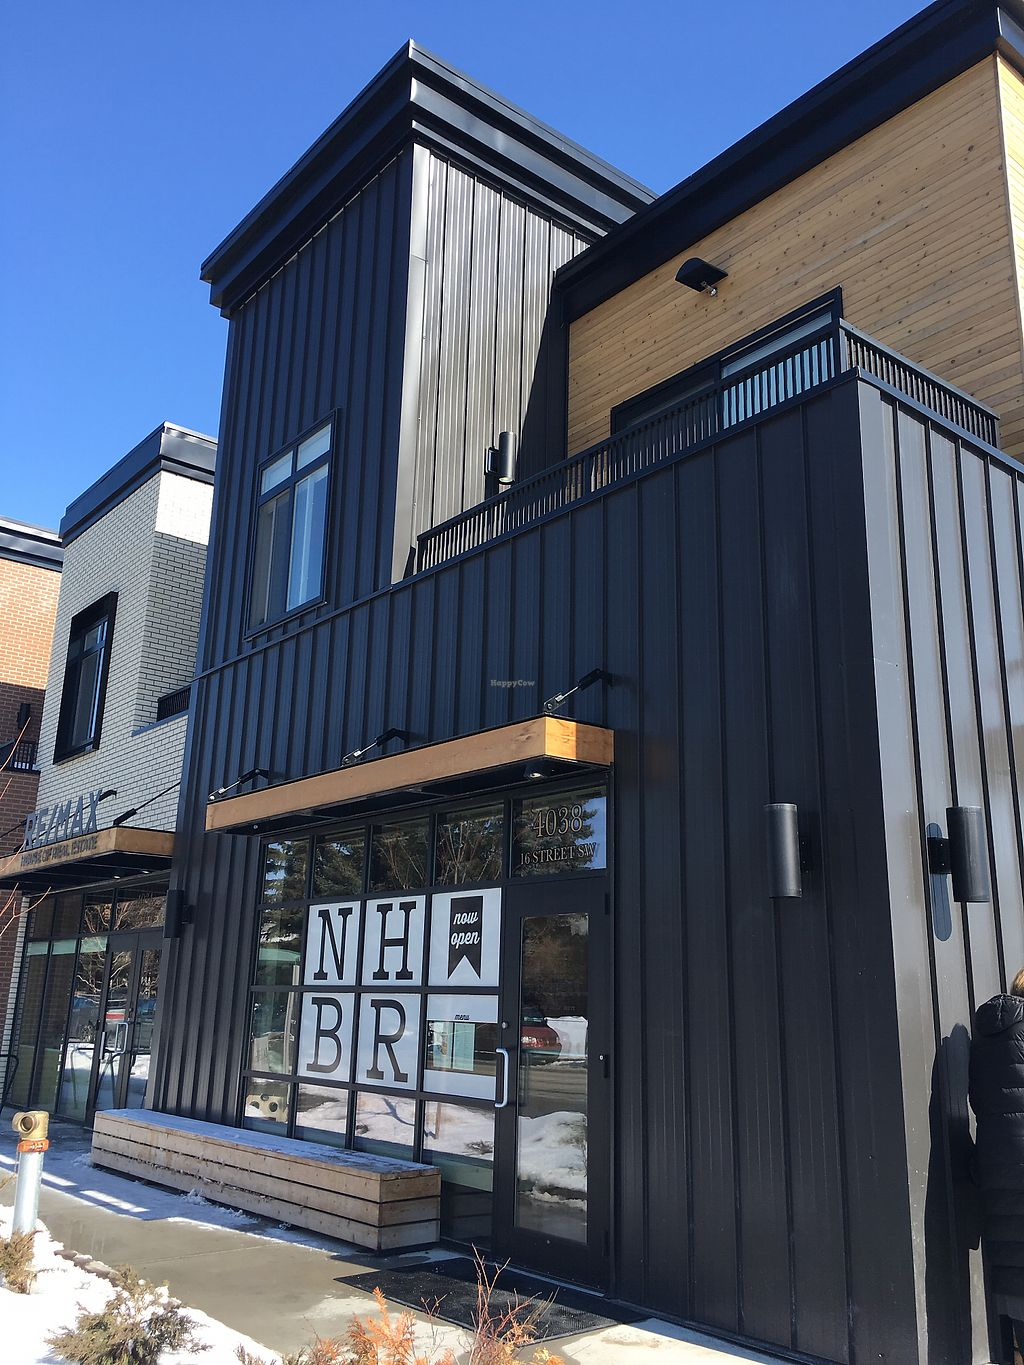 """Photo of NHBR Coffee  by <a href=""""/members/profile/NotesNorth"""">NotesNorth</a> <br/>Hip Local Cafe <br/> March 19, 2018  - <a href='/contact/abuse/image/114510/373040'>Report</a>"""